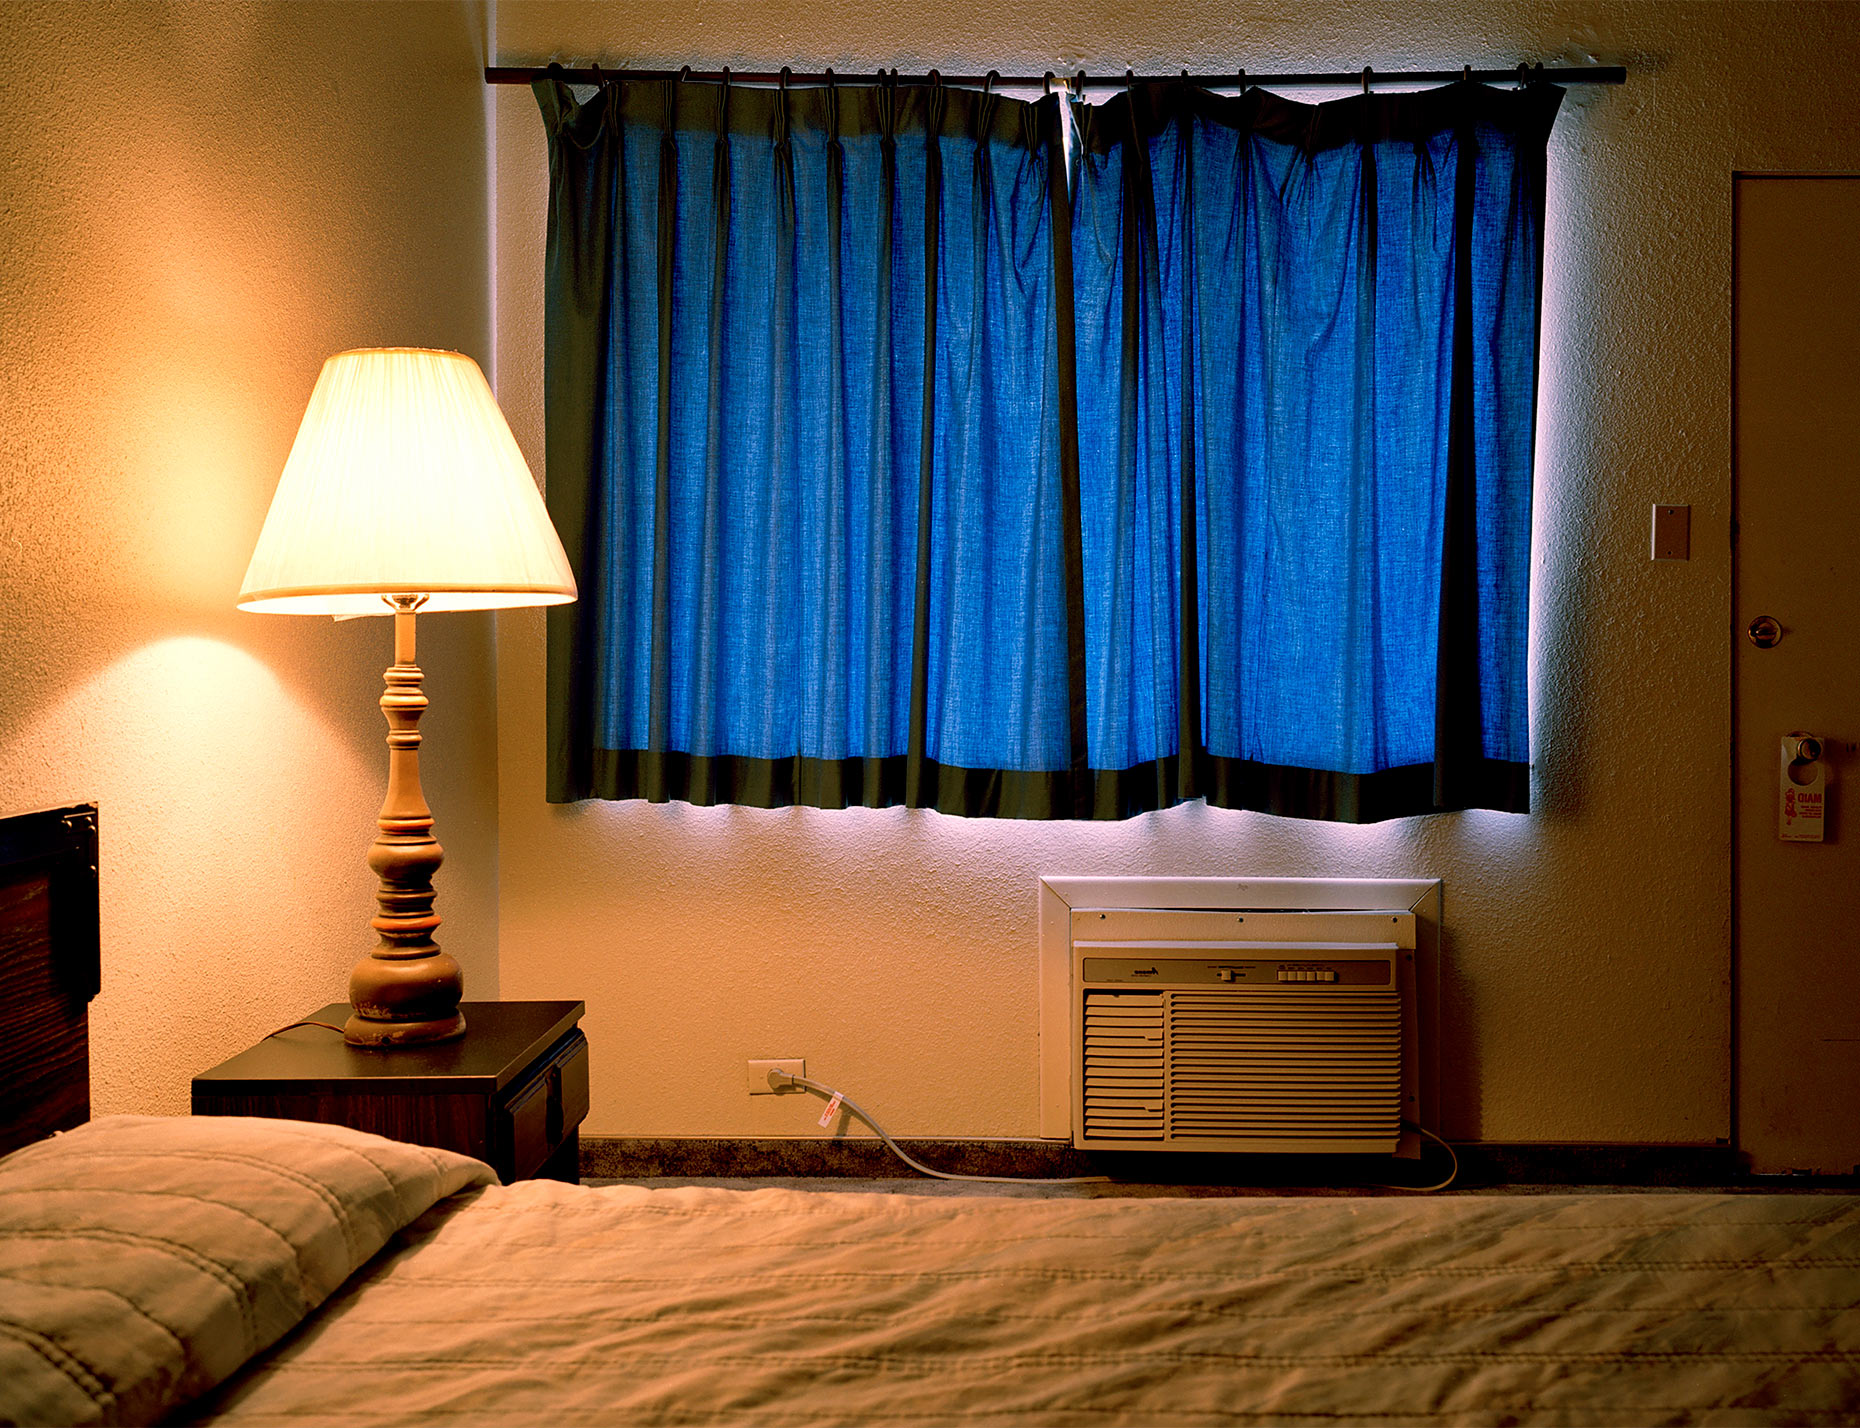 CB_MOTEL_BLUE-CURTAIN